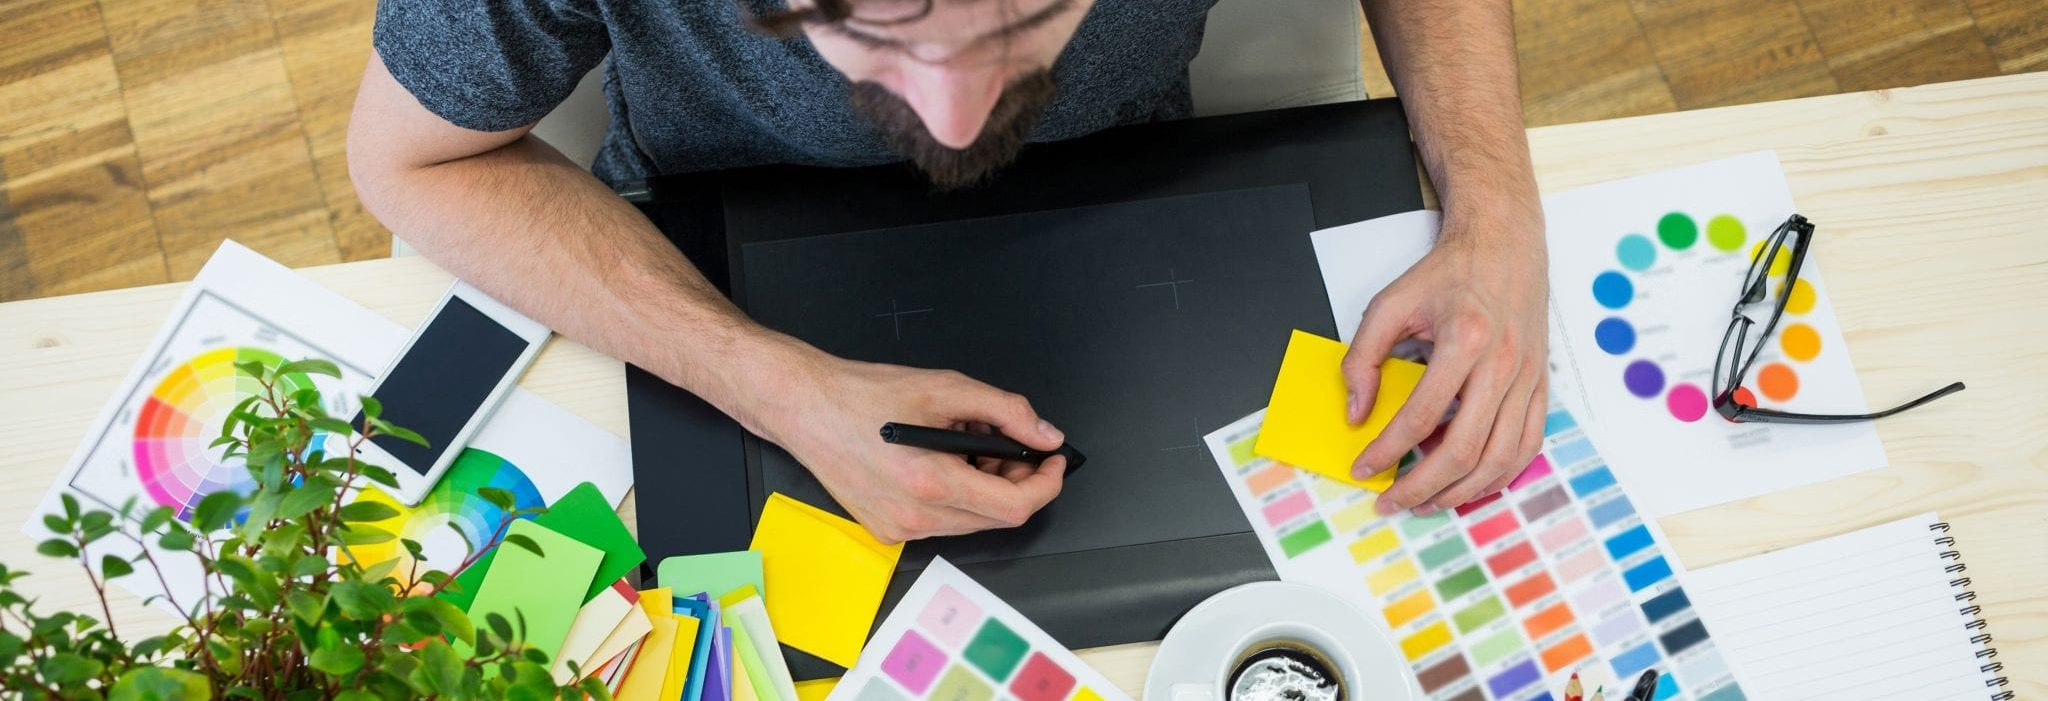 Male graphic designer using graphics tablet